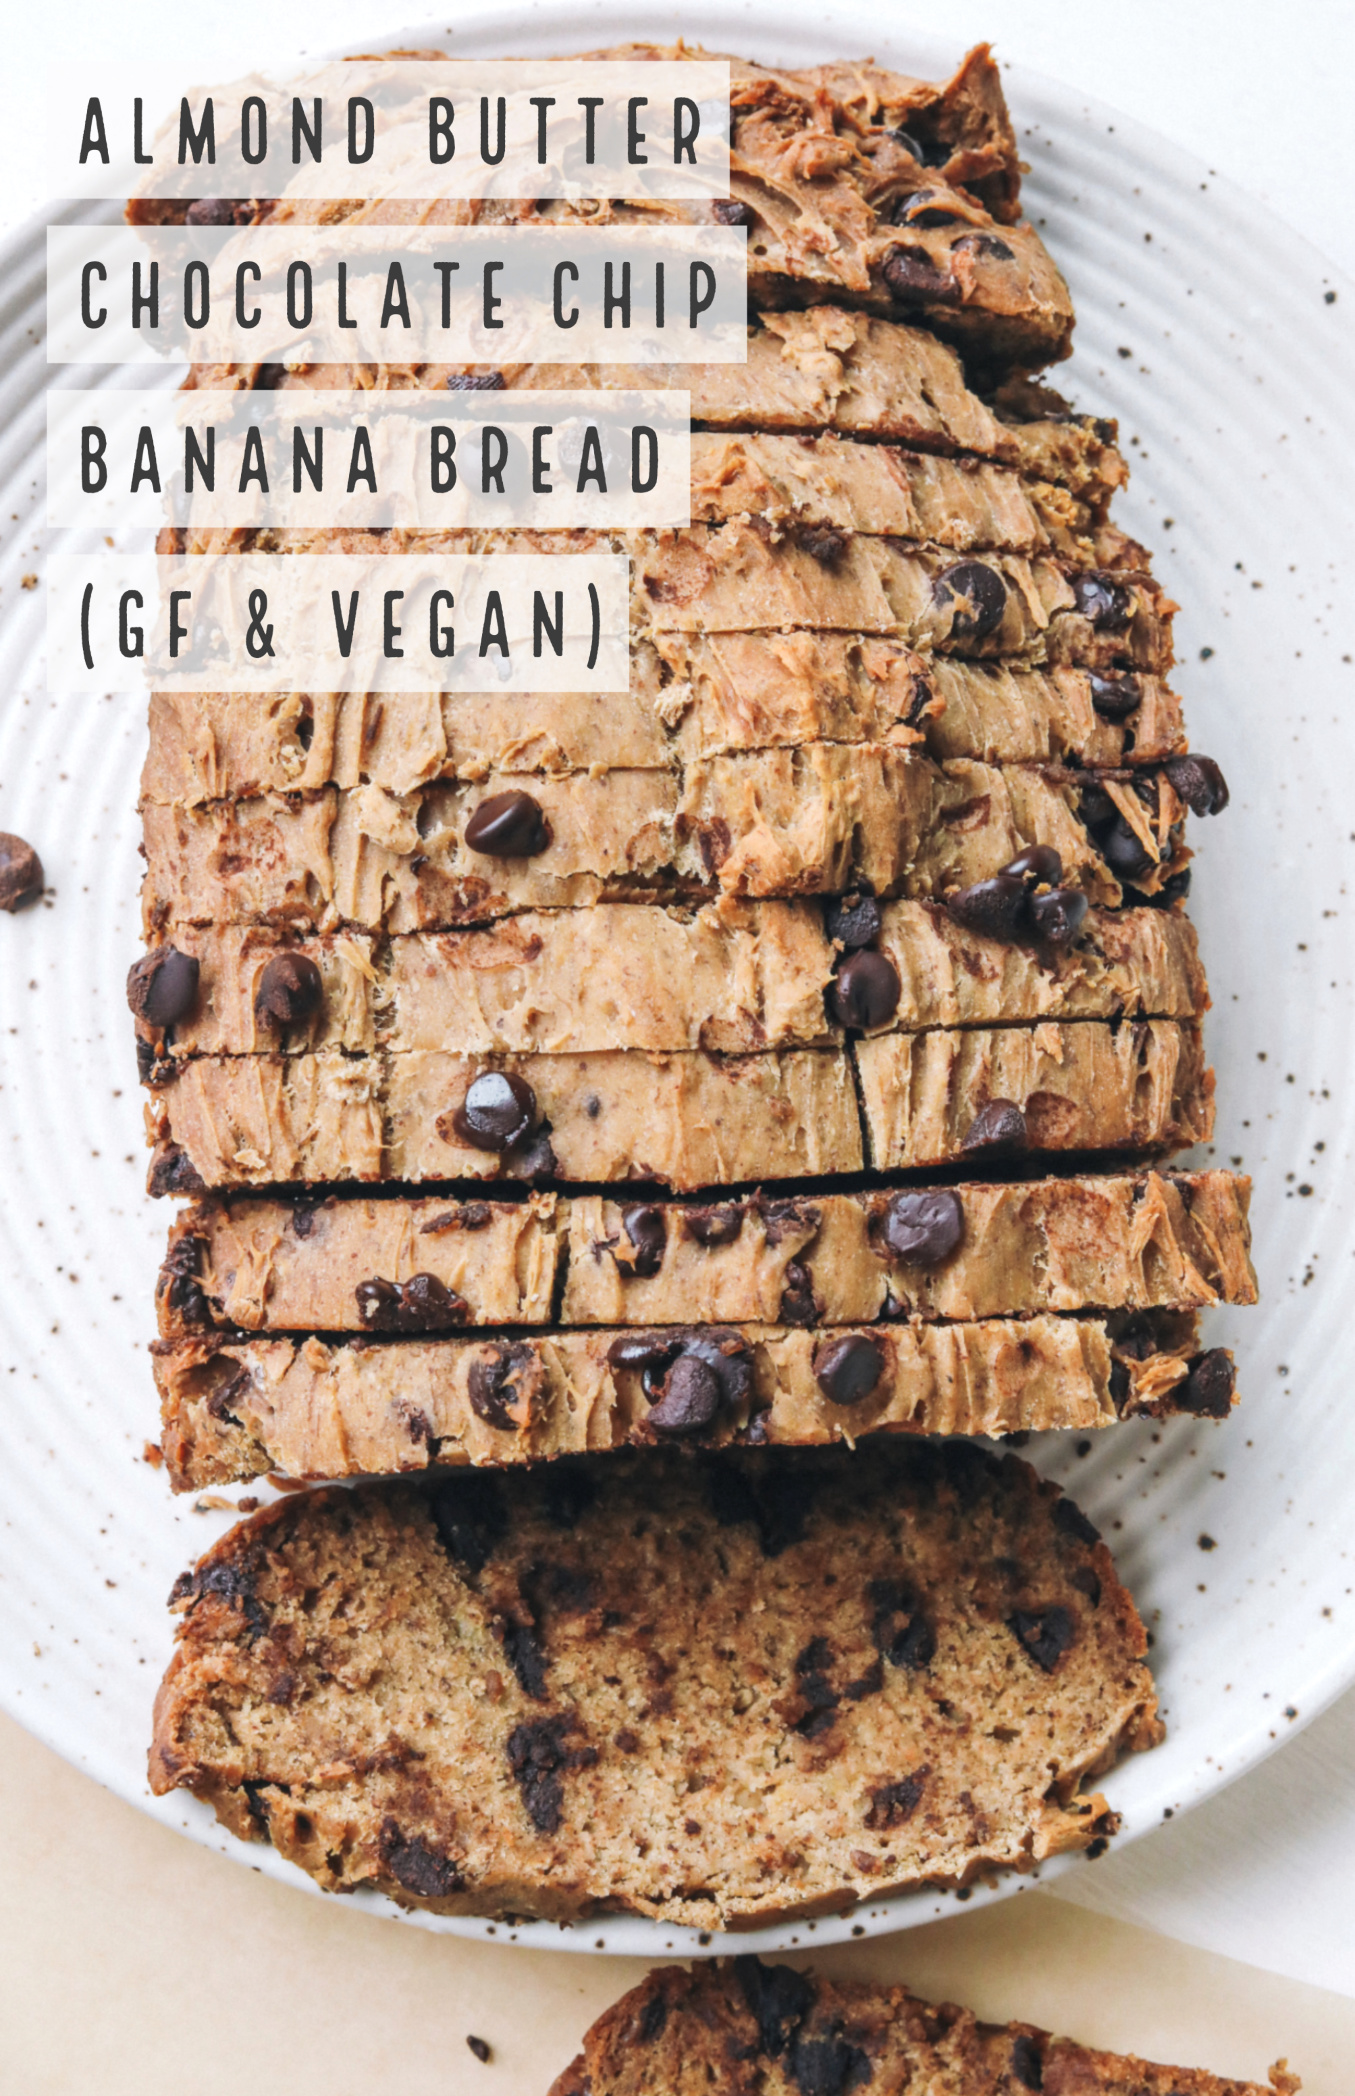 healthy vegan banana bread gluten free chocolate chip almond butter dairy free